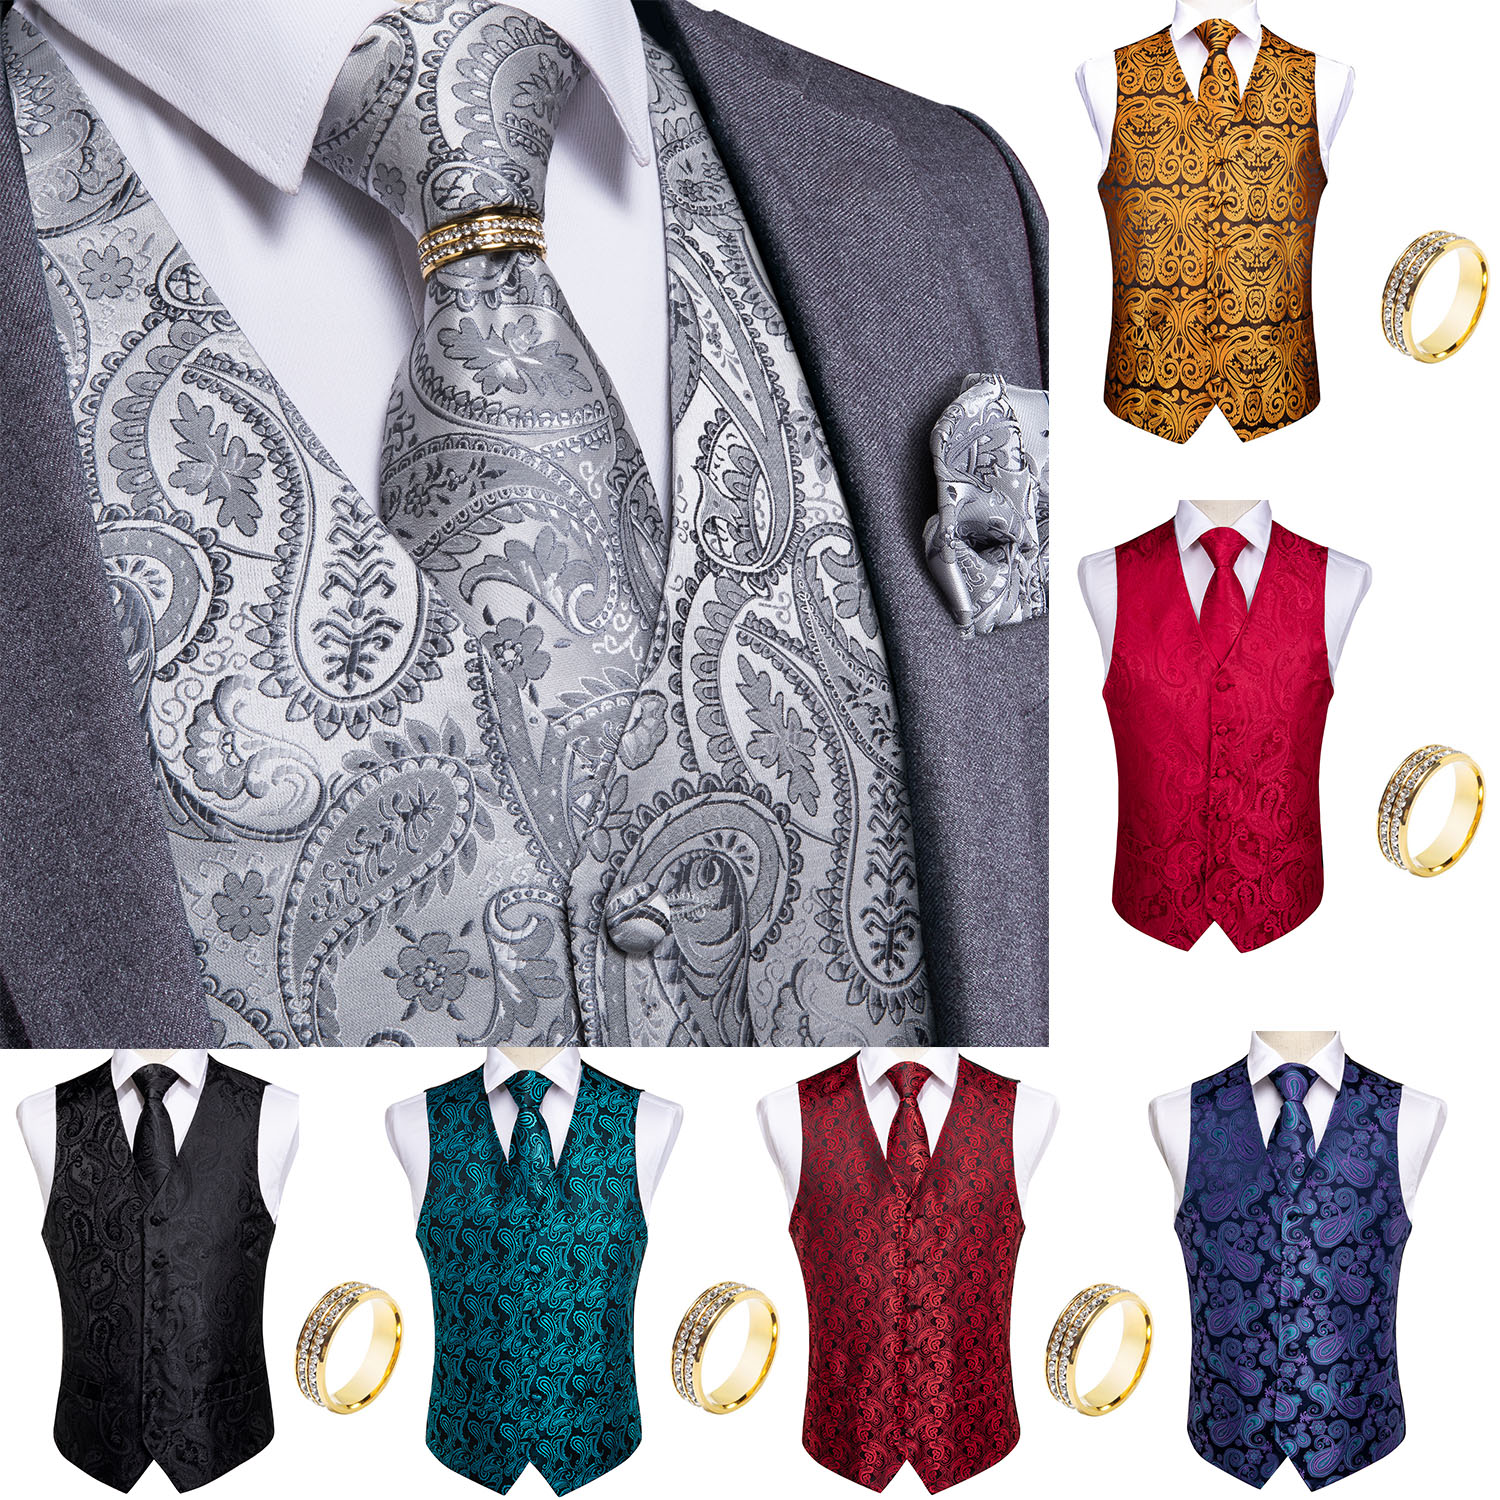 Men Vest Tie Set Classic Wedding Paisley Black Gold Paisley Tuxedo Suit Vest Formal Dress Mens Waistcoat Vest Homme DiBanGu